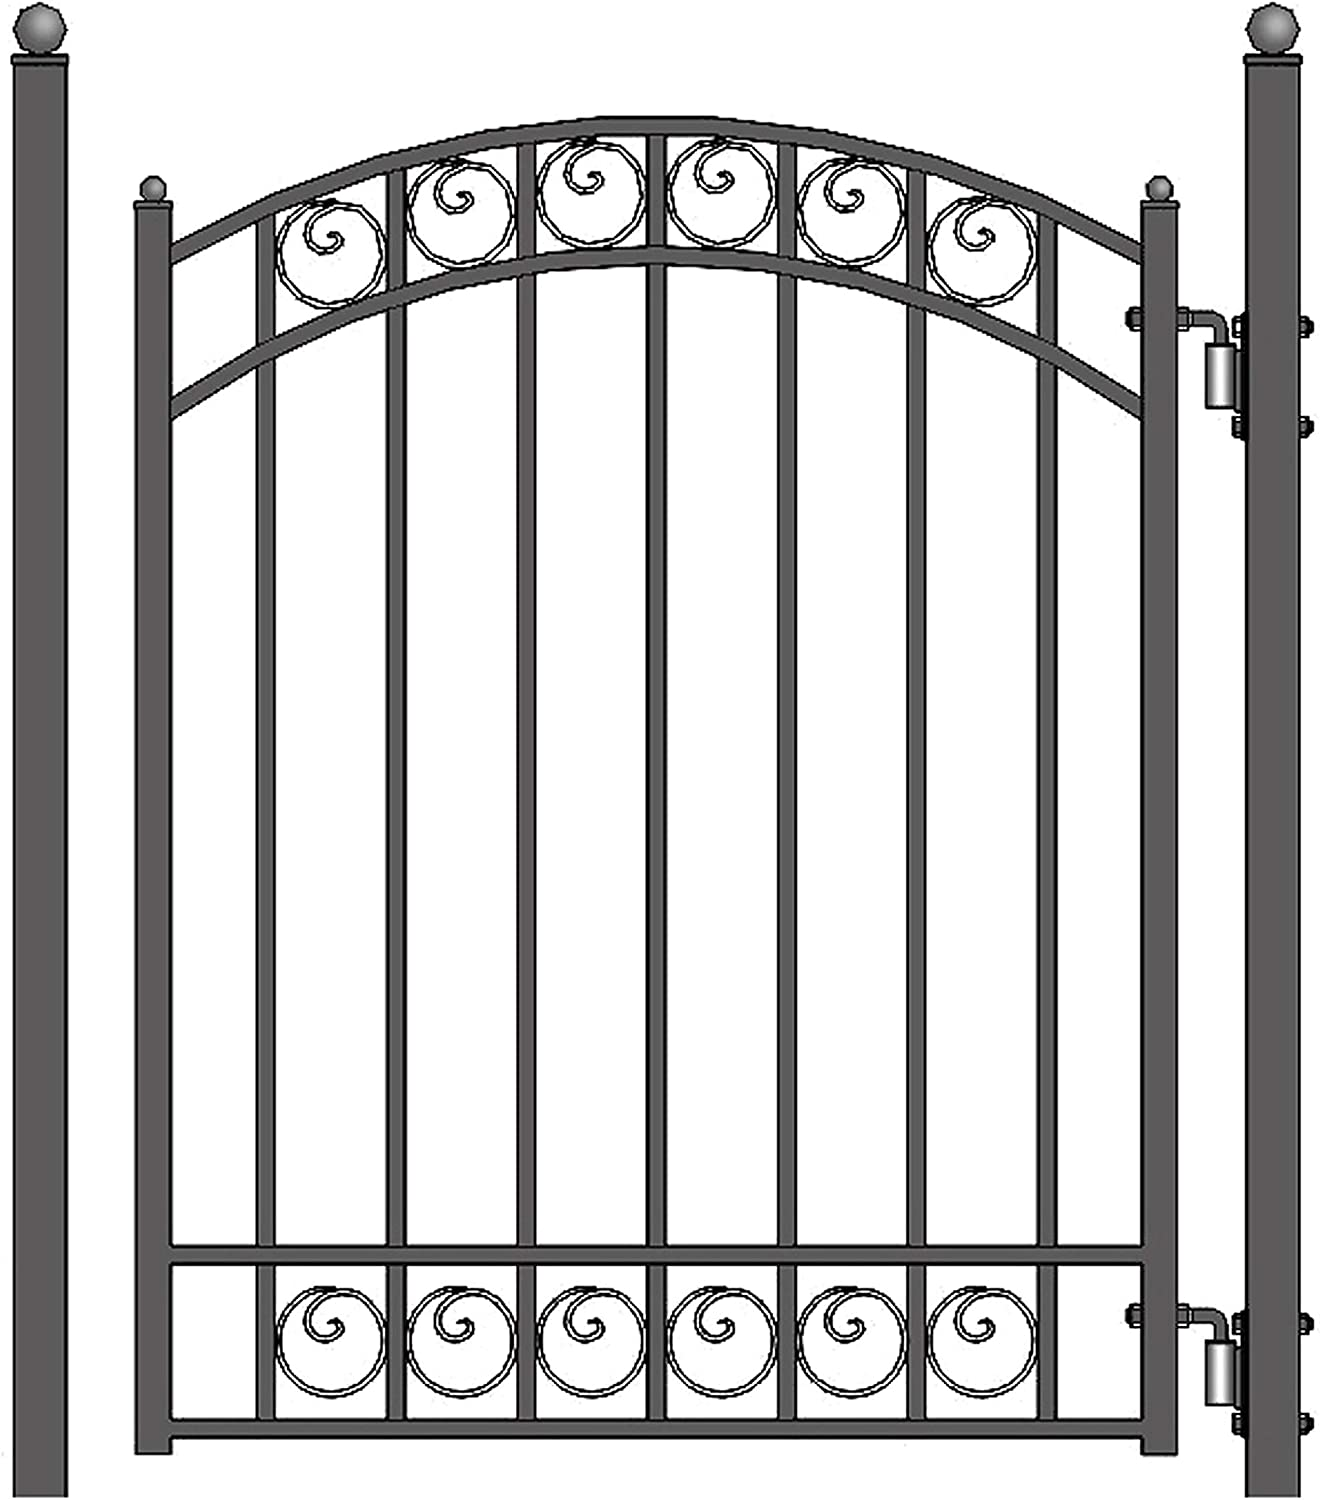 ALEKO SET12X4MUNS Munich Style Galvanized Single Swing Steel Gate Set Driveway Security Gate /& Pedestrian Gate Black